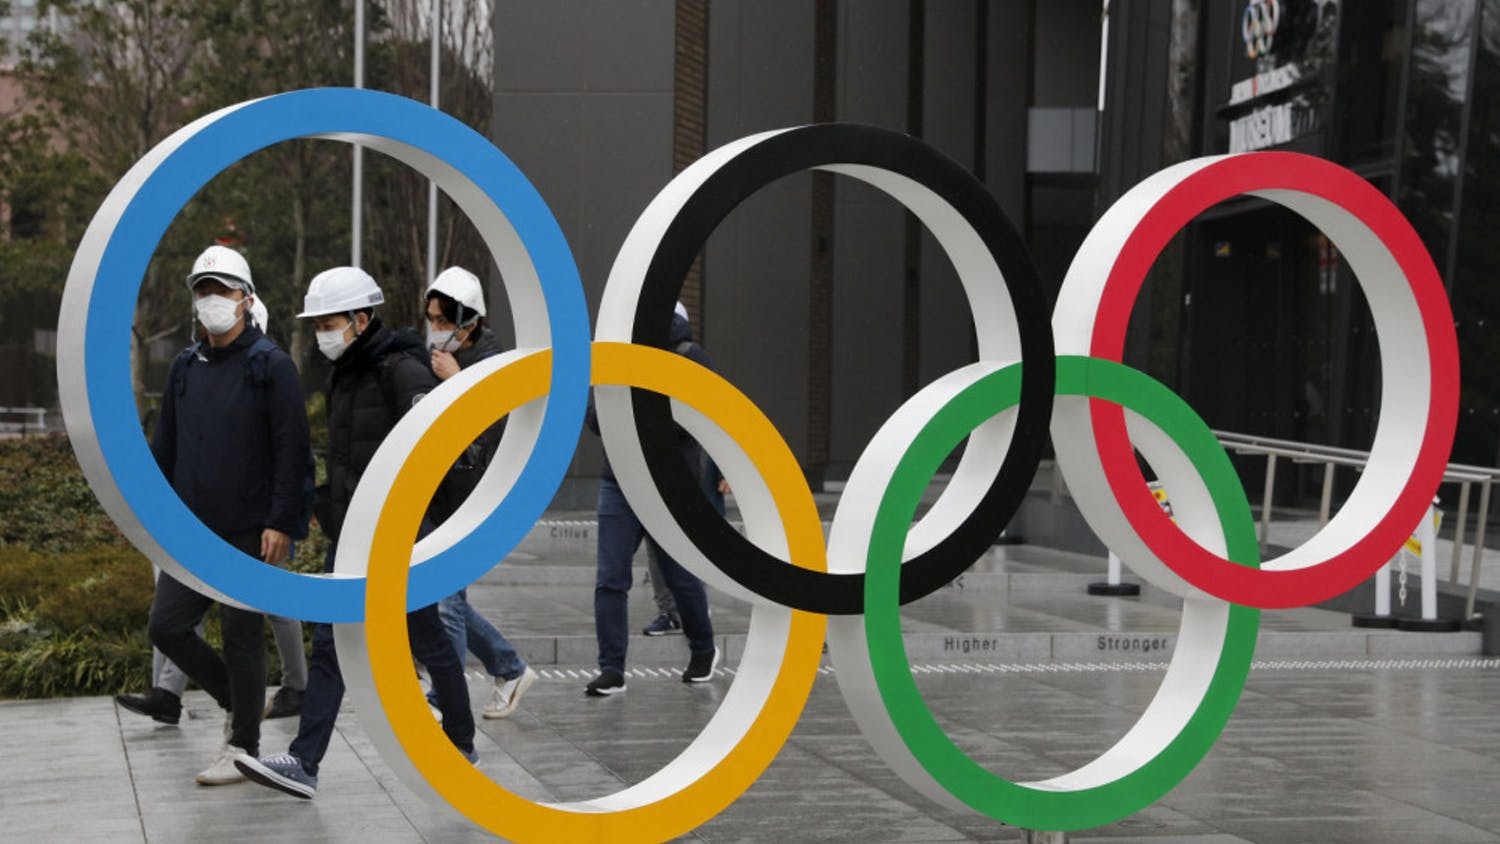 """FILE - In this March 4, 2020, file photo, people wearing masks walk past the Olympic rings near the New National Stadium in Tokyo. It's been 2 1/2 months since the Tokyo Olympics were postponed until next year because of the COVID-19 pandemic. So where do the games stand? So far, many ideas about how the Olympic can take place are being floated by the International Olympic Committee, Japanese officials and politicians, and in unsourced Japanese newspaper articles coming from local organizers and politicians. The focus is on soaring costs, fans, or no fans, possible quarantines for athletes, and cutting back to only """"the essentials."""" (AP Photo/Jae C. Hong, File)"""